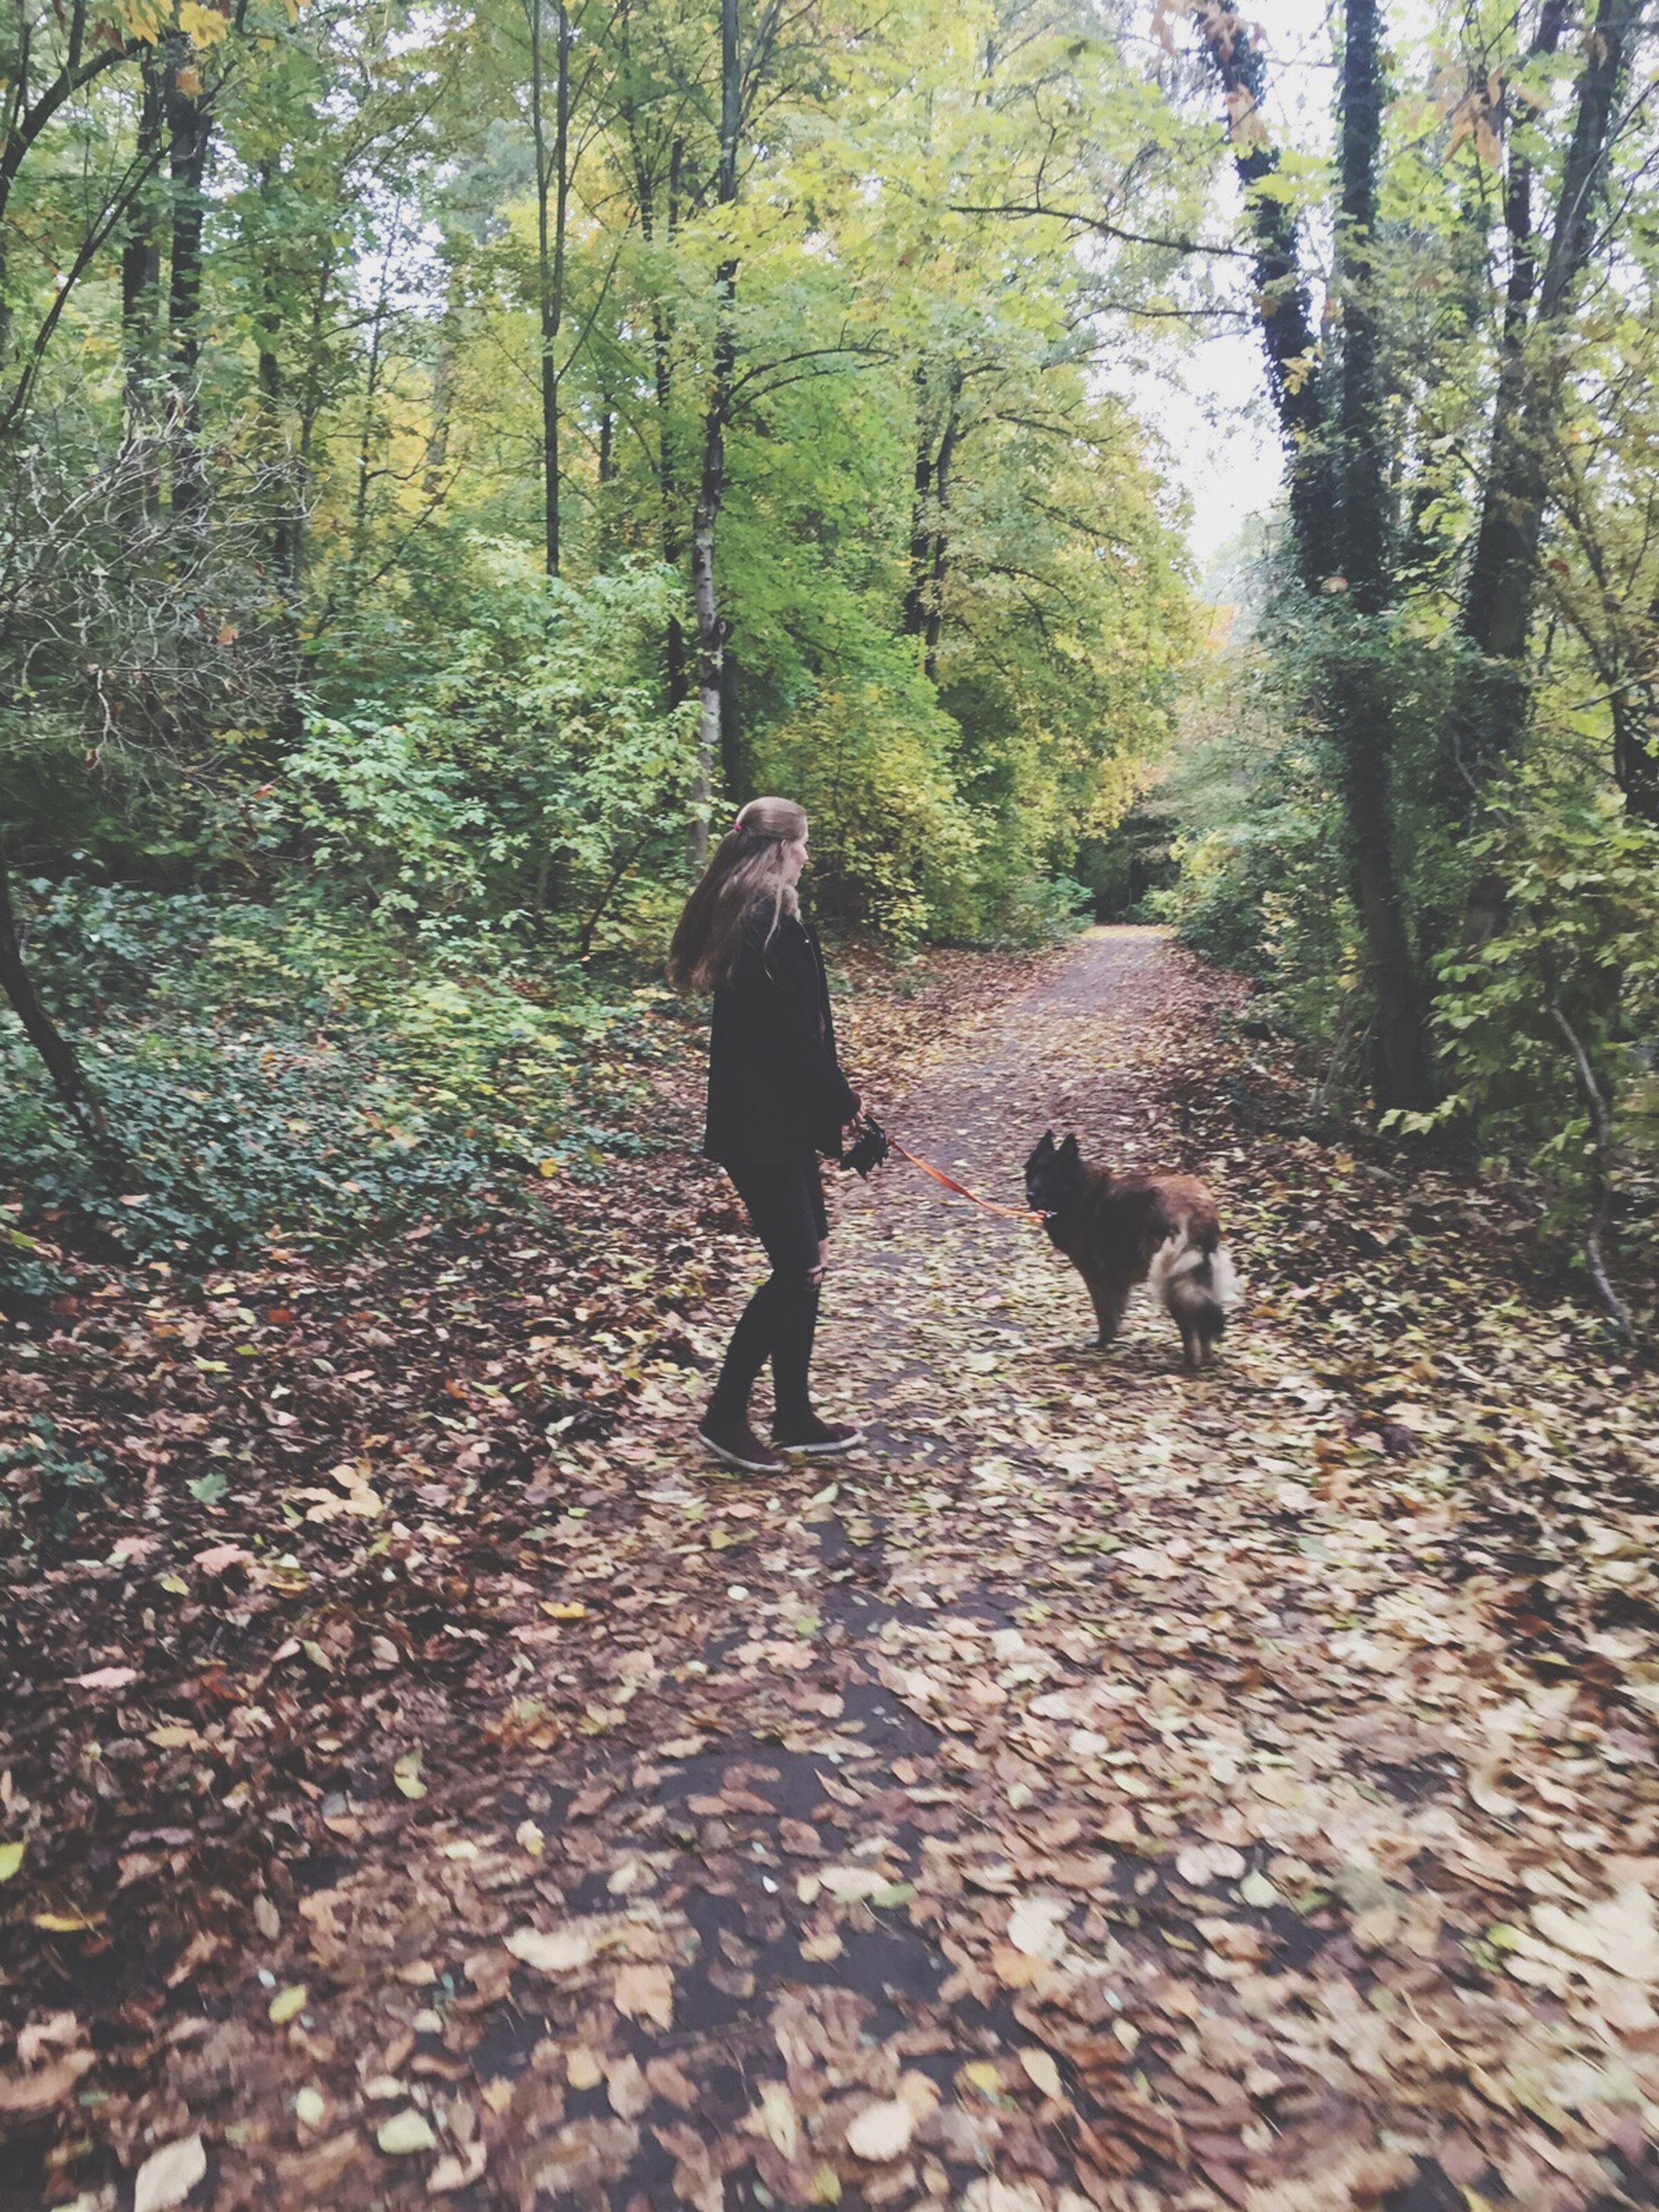 tree, forest, full length, lifestyles, rear view, leisure activity, walking, autumn, leaf, nature, growth, change, season, men, tree trunk, person, tranquility, day